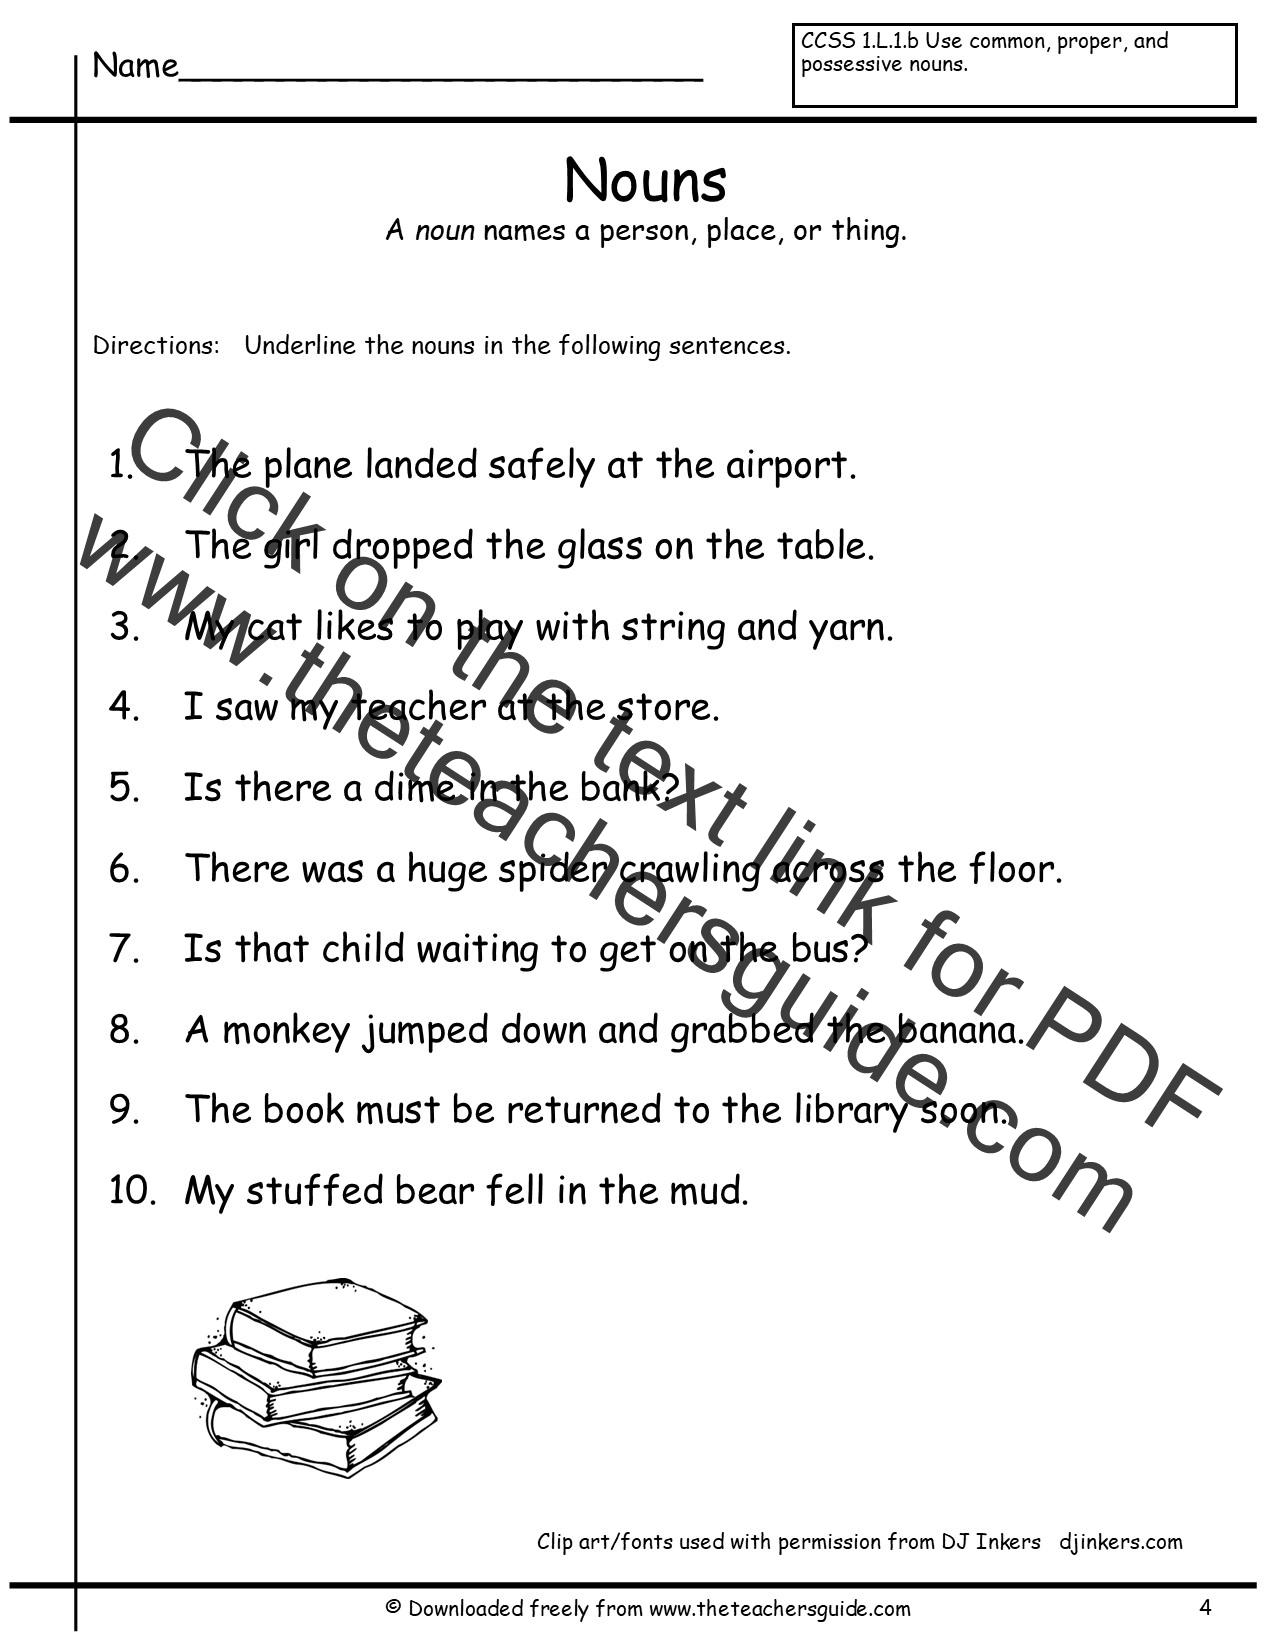 Possessive Nouns Quiz Printable